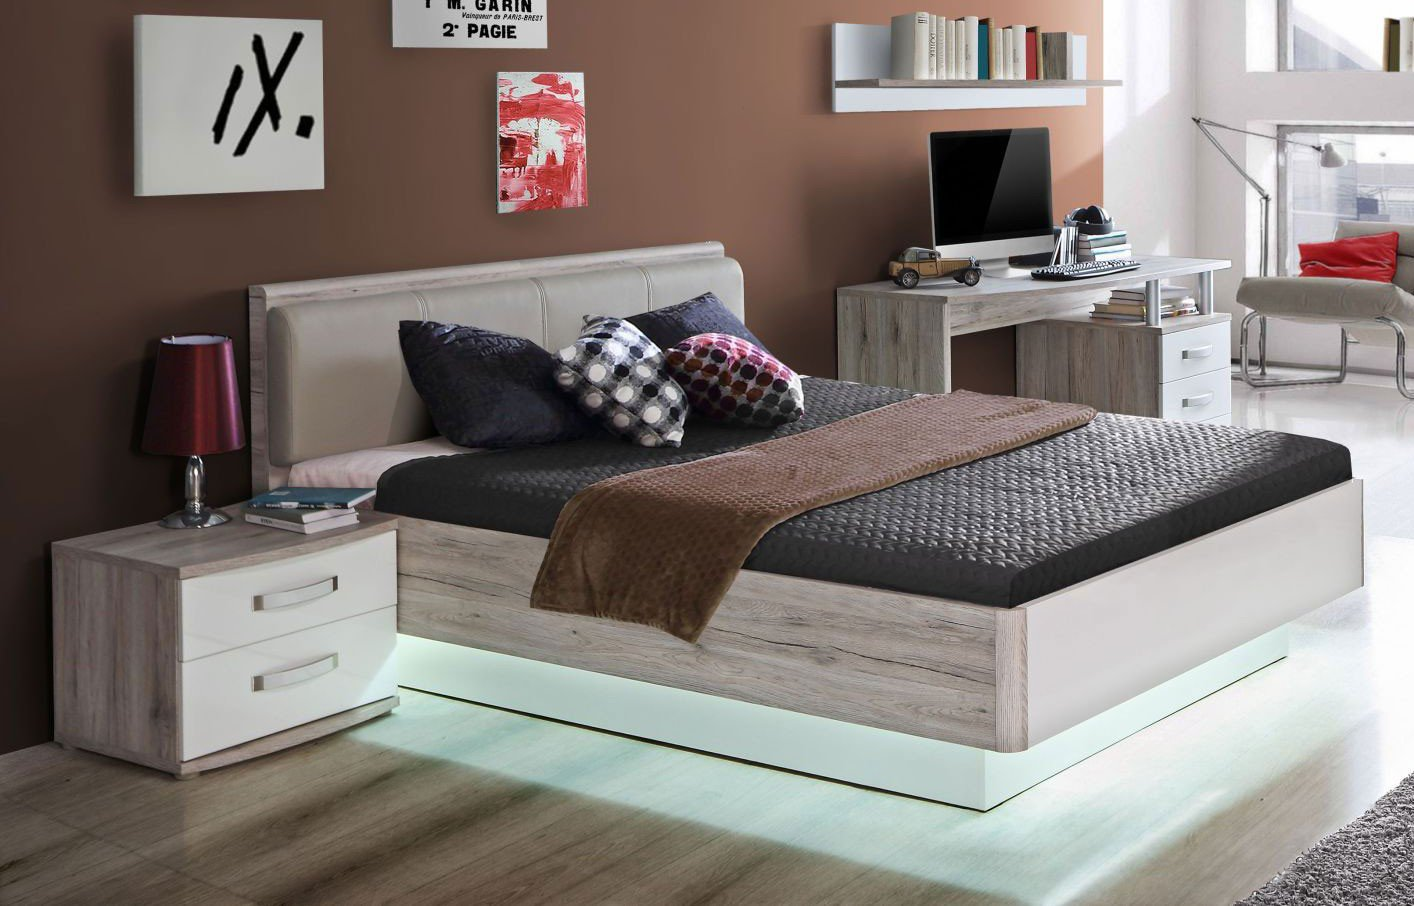 rondino bett 140 x 200 cm sandeiche nachbildung hochglanz wei m bel letz ihr online shop. Black Bedroom Furniture Sets. Home Design Ideas